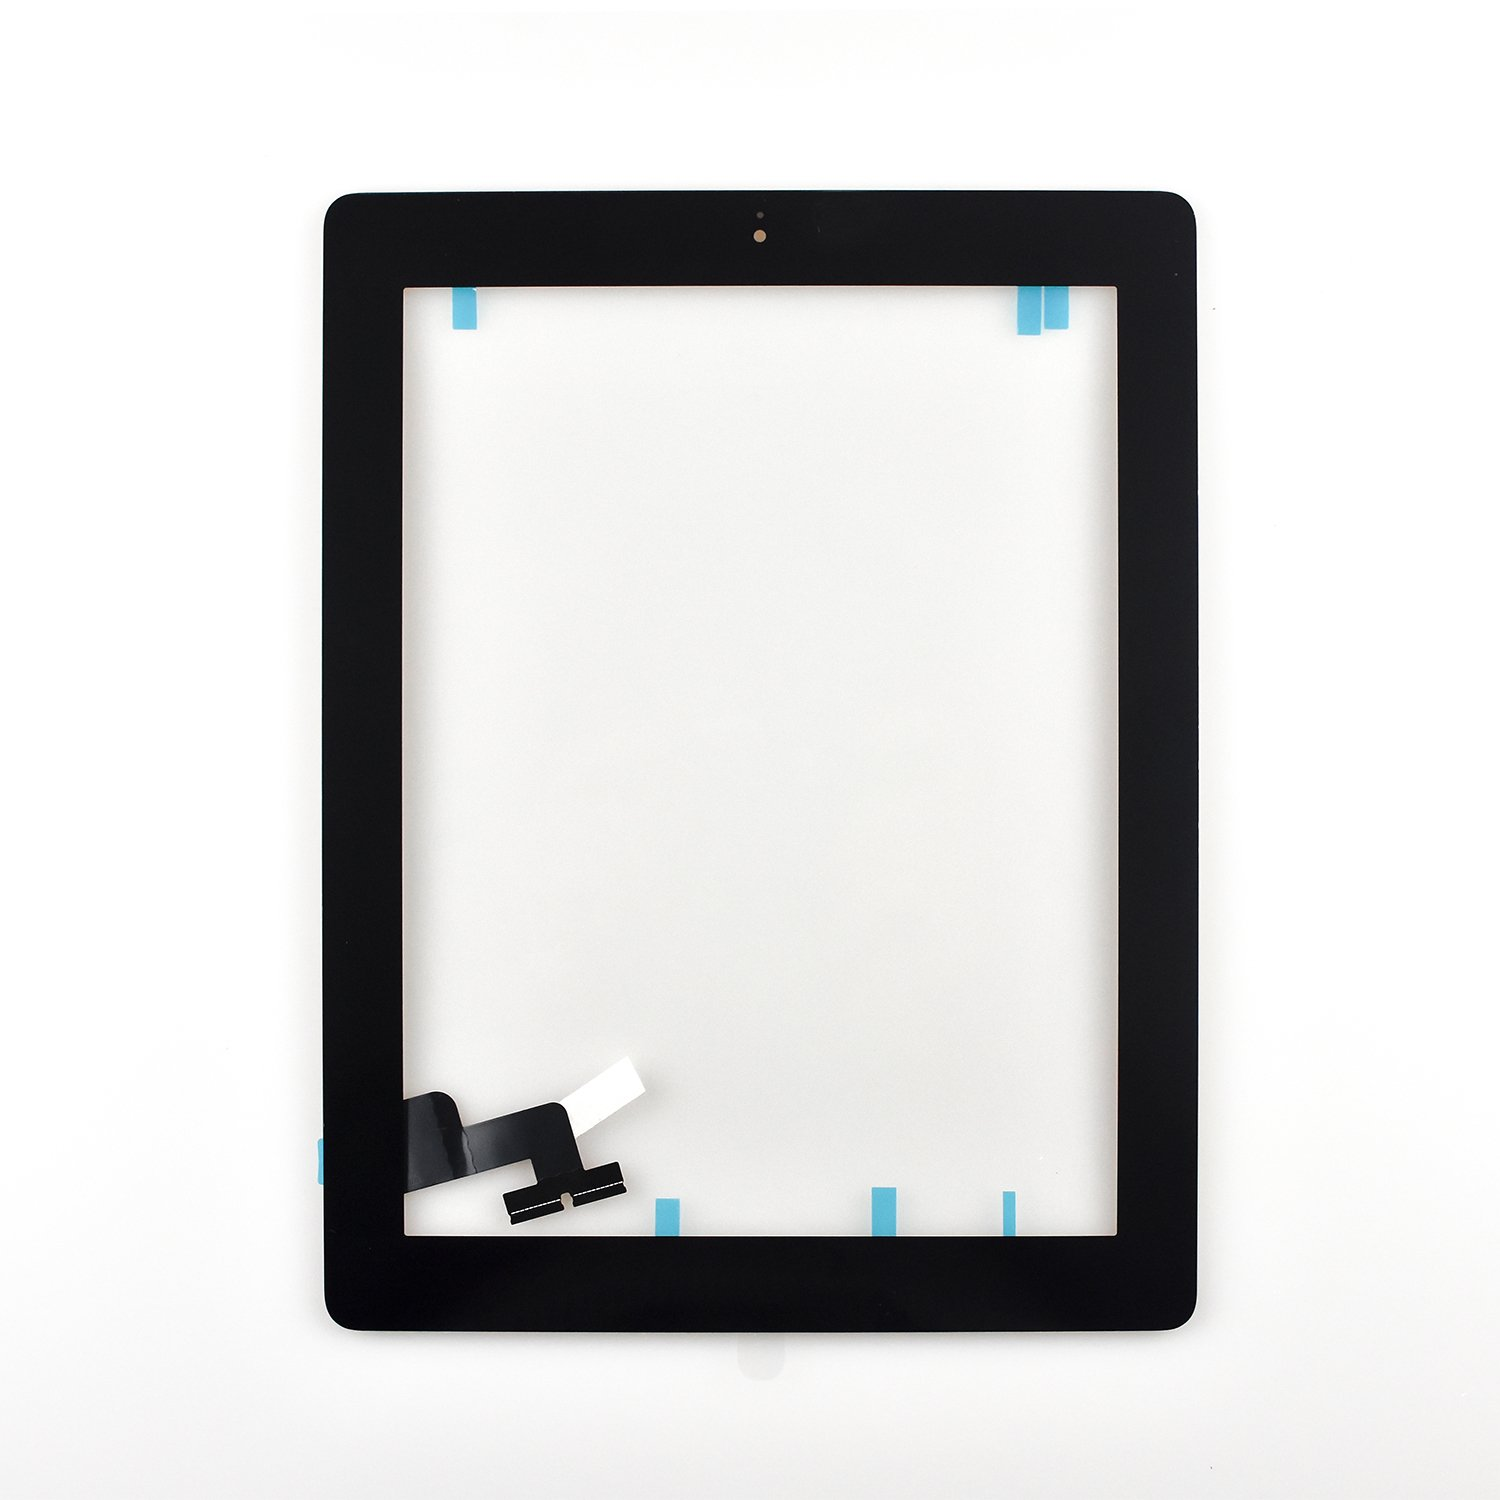 Touch Screen Digitizer Assembled with Home Button Strong Adhesive for iPad 2 2nd Generation A1395 A1396 A1397 (black)